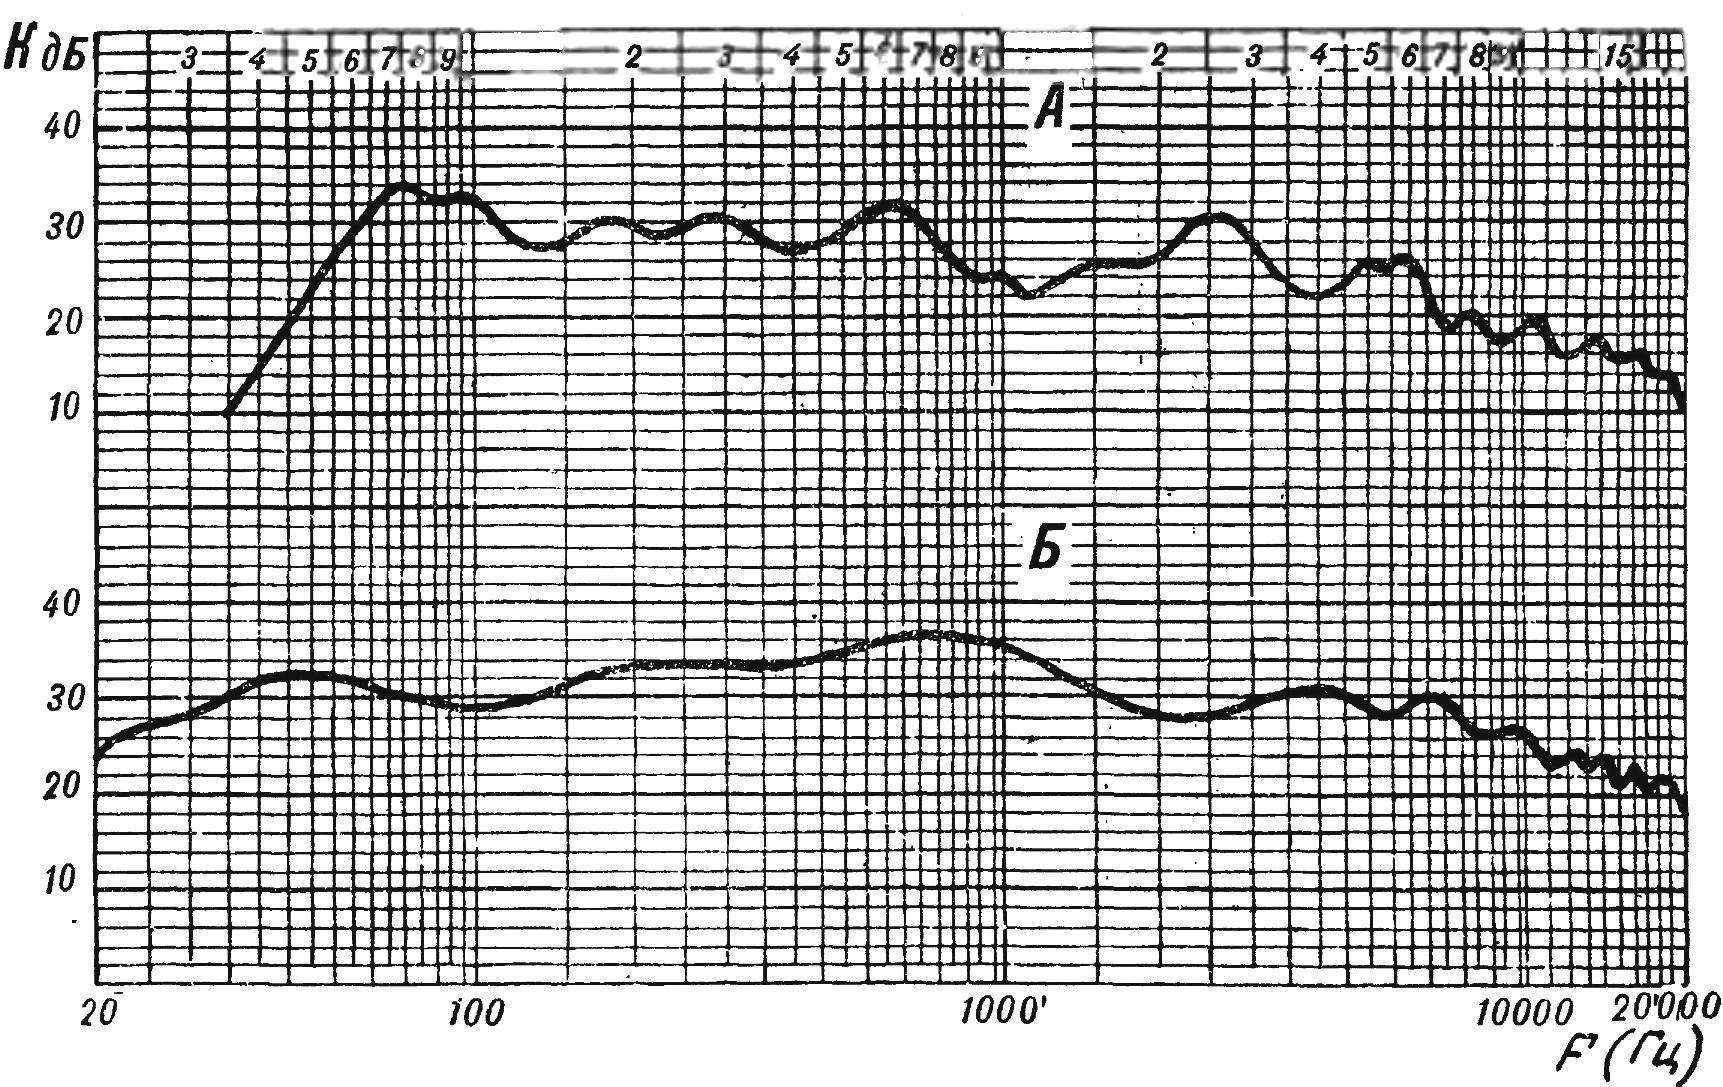 Fig. 1. Comparative frequency characteristics of sound pressure